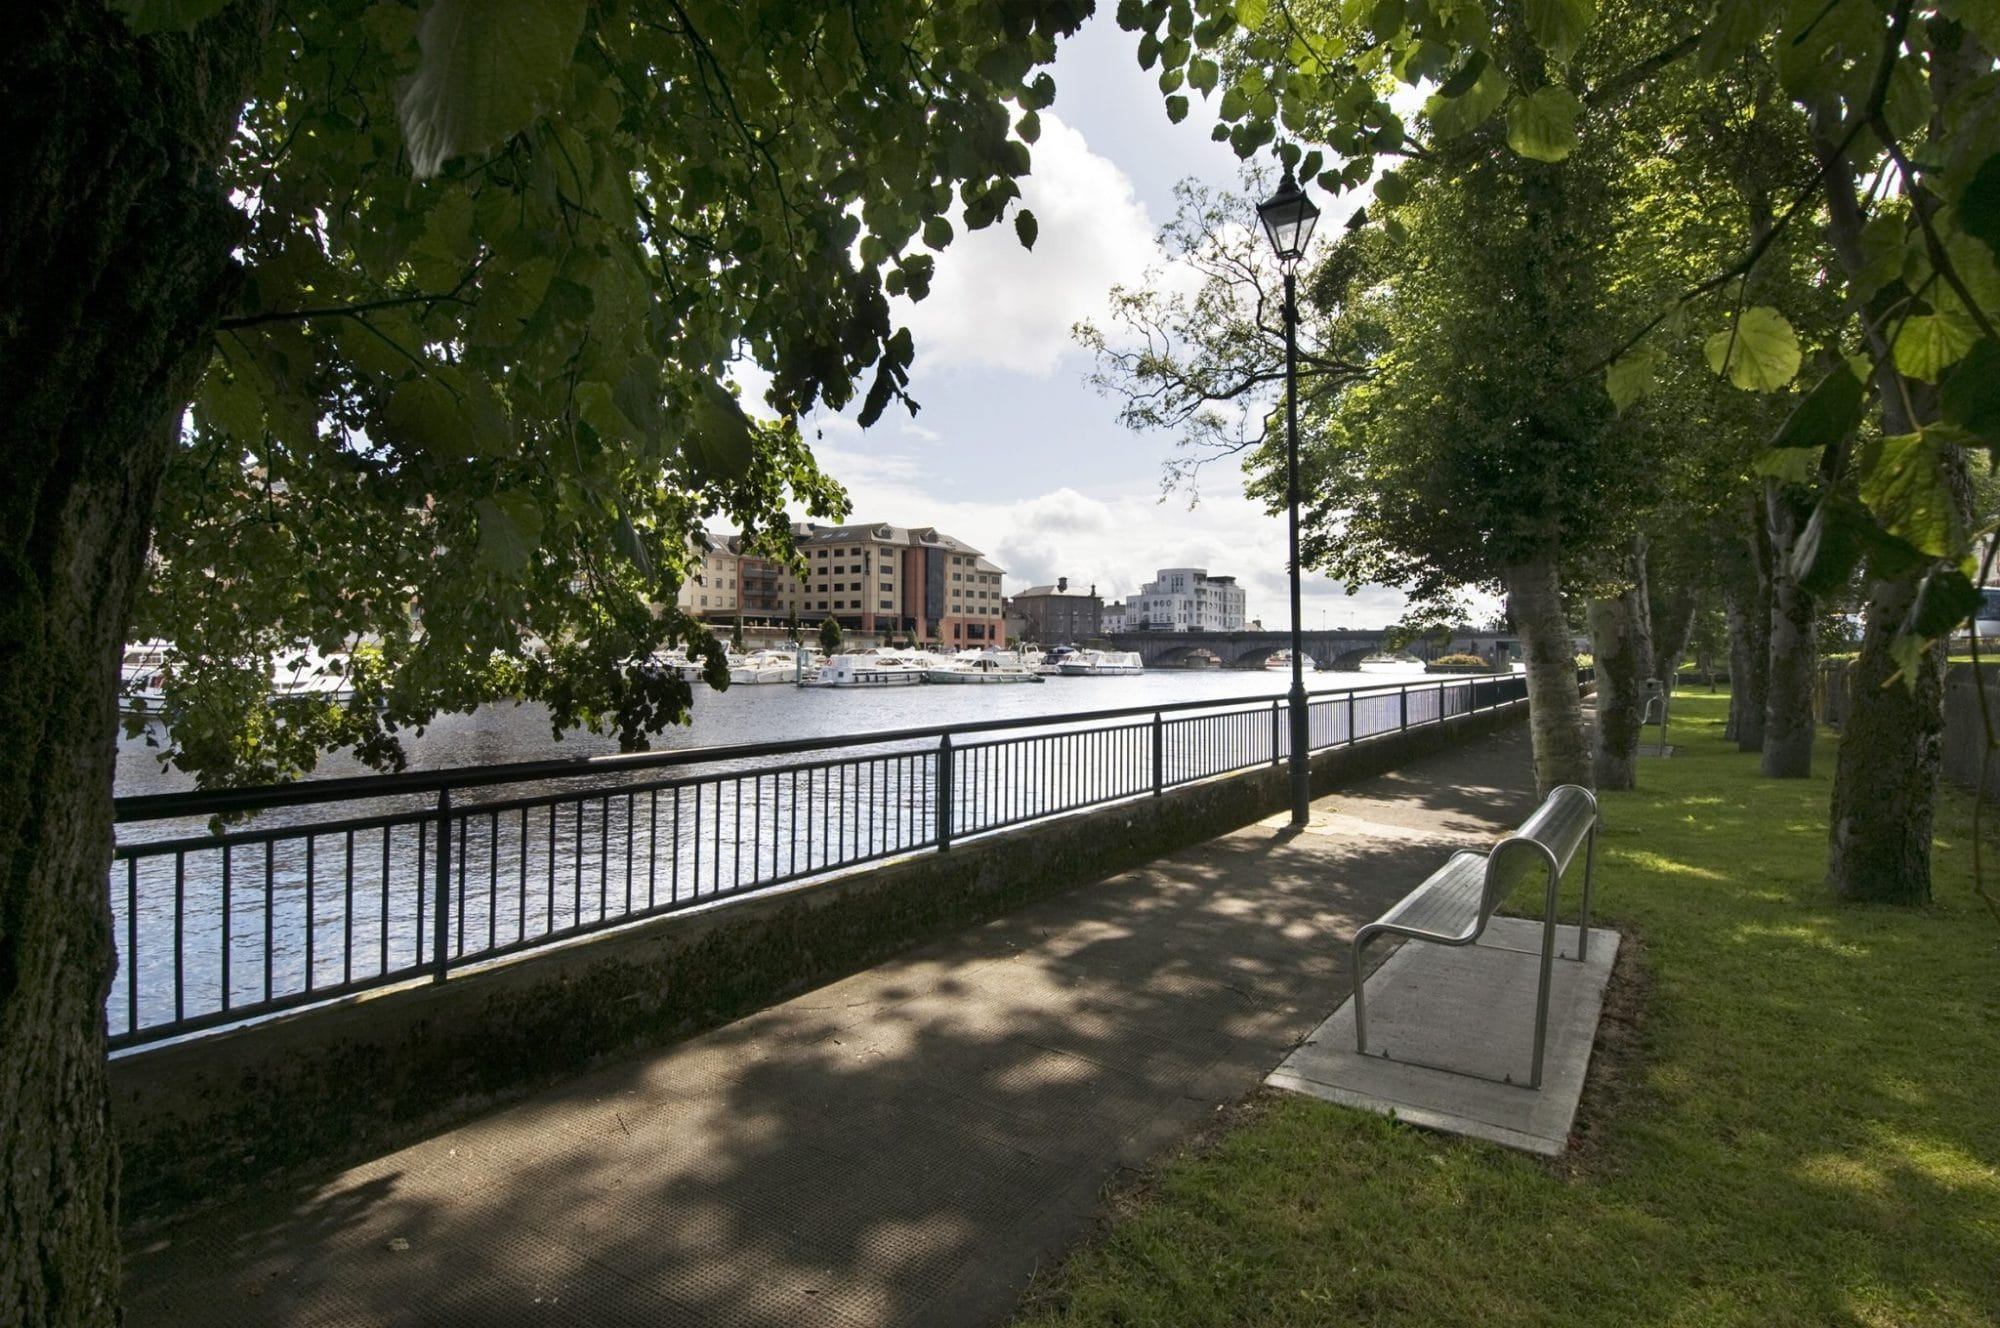 Athlone: Midlands City Region?